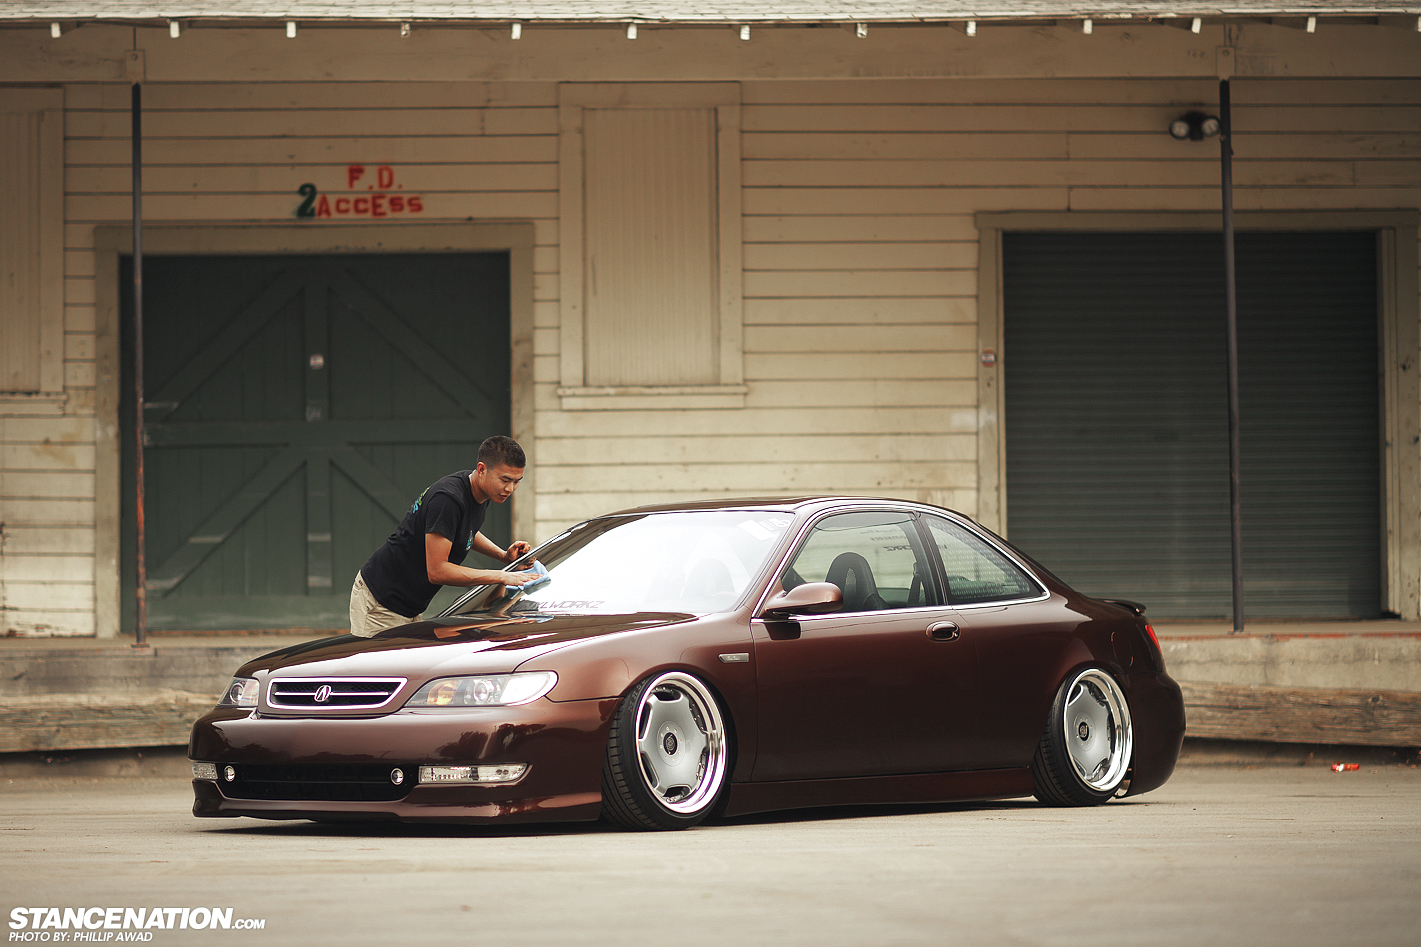 Whats Your Style Nates VIPstyled Acura CL StanceNation - Acura cl 97